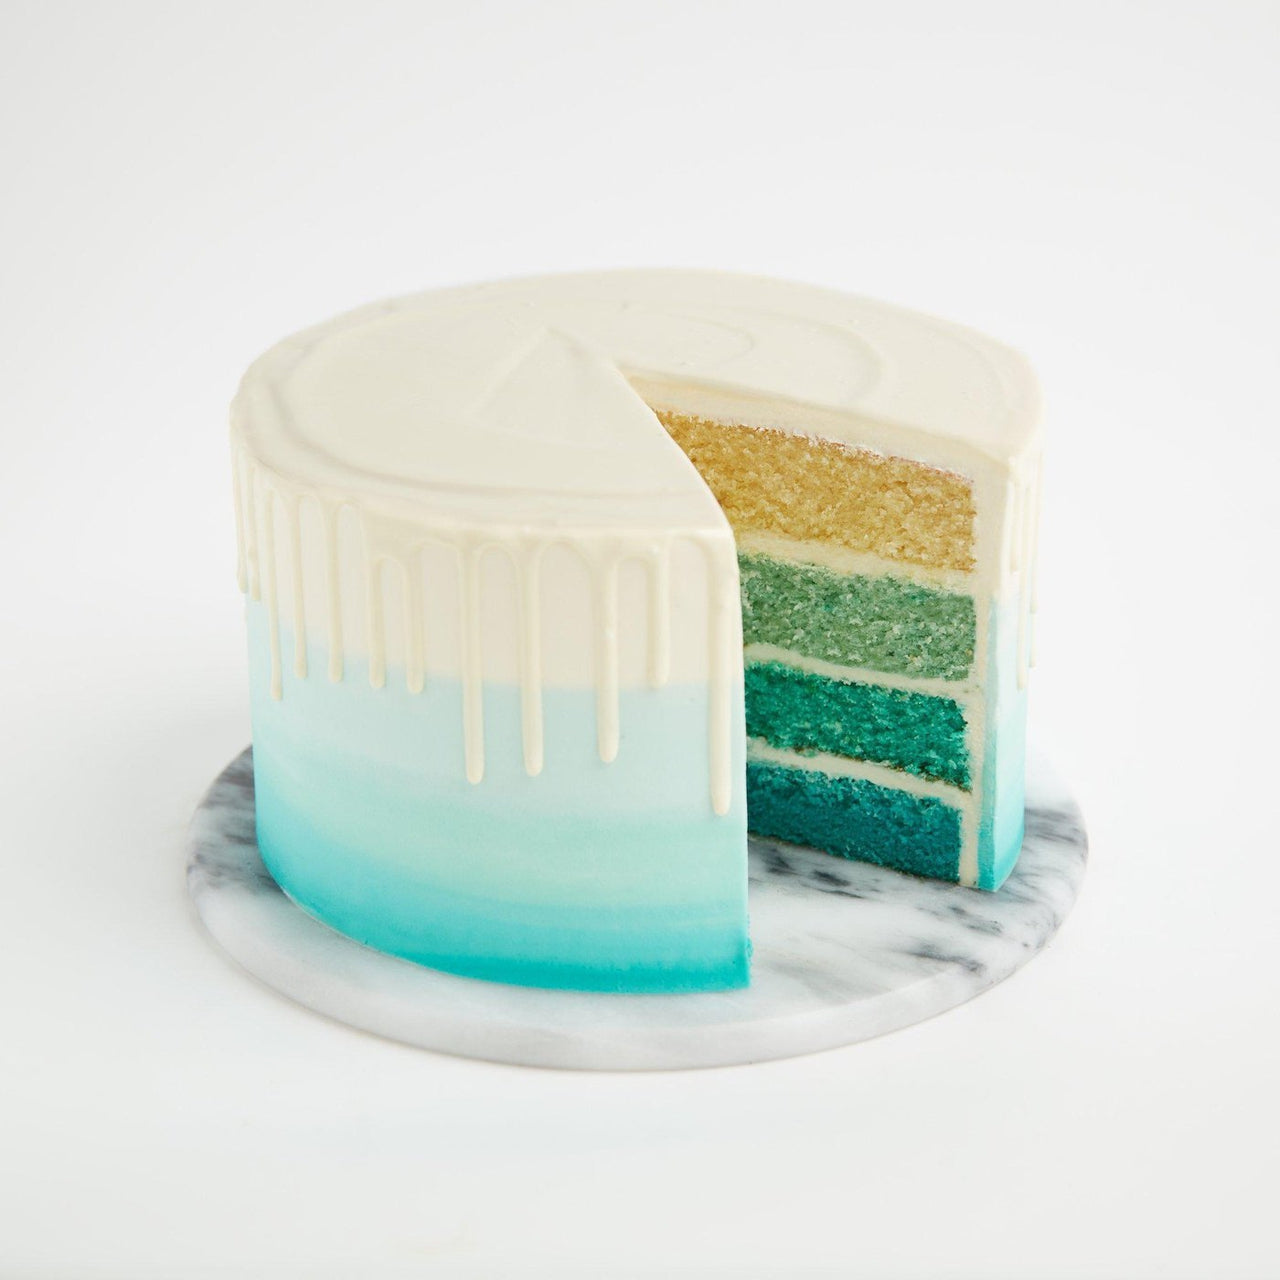 Gluten-Free Ombre Cake by Crumbs & Doilies